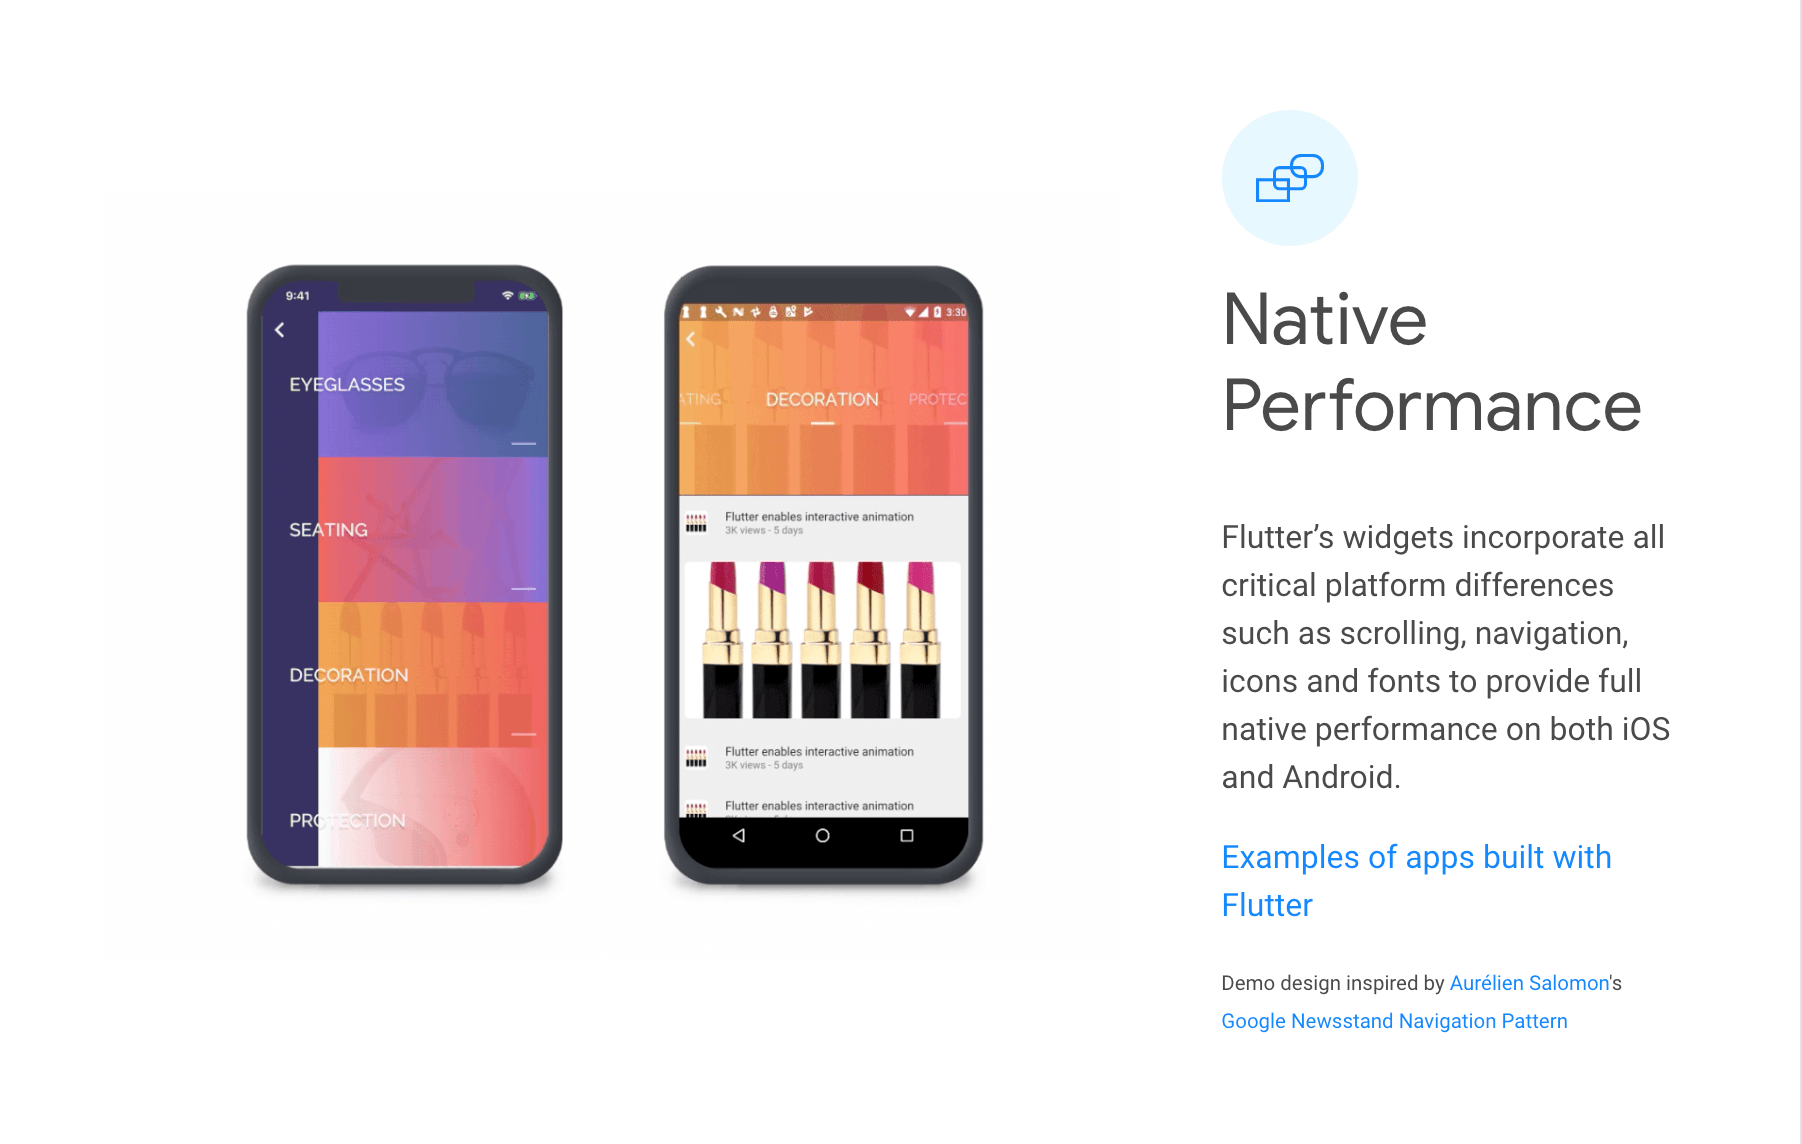 flutter-native-performance